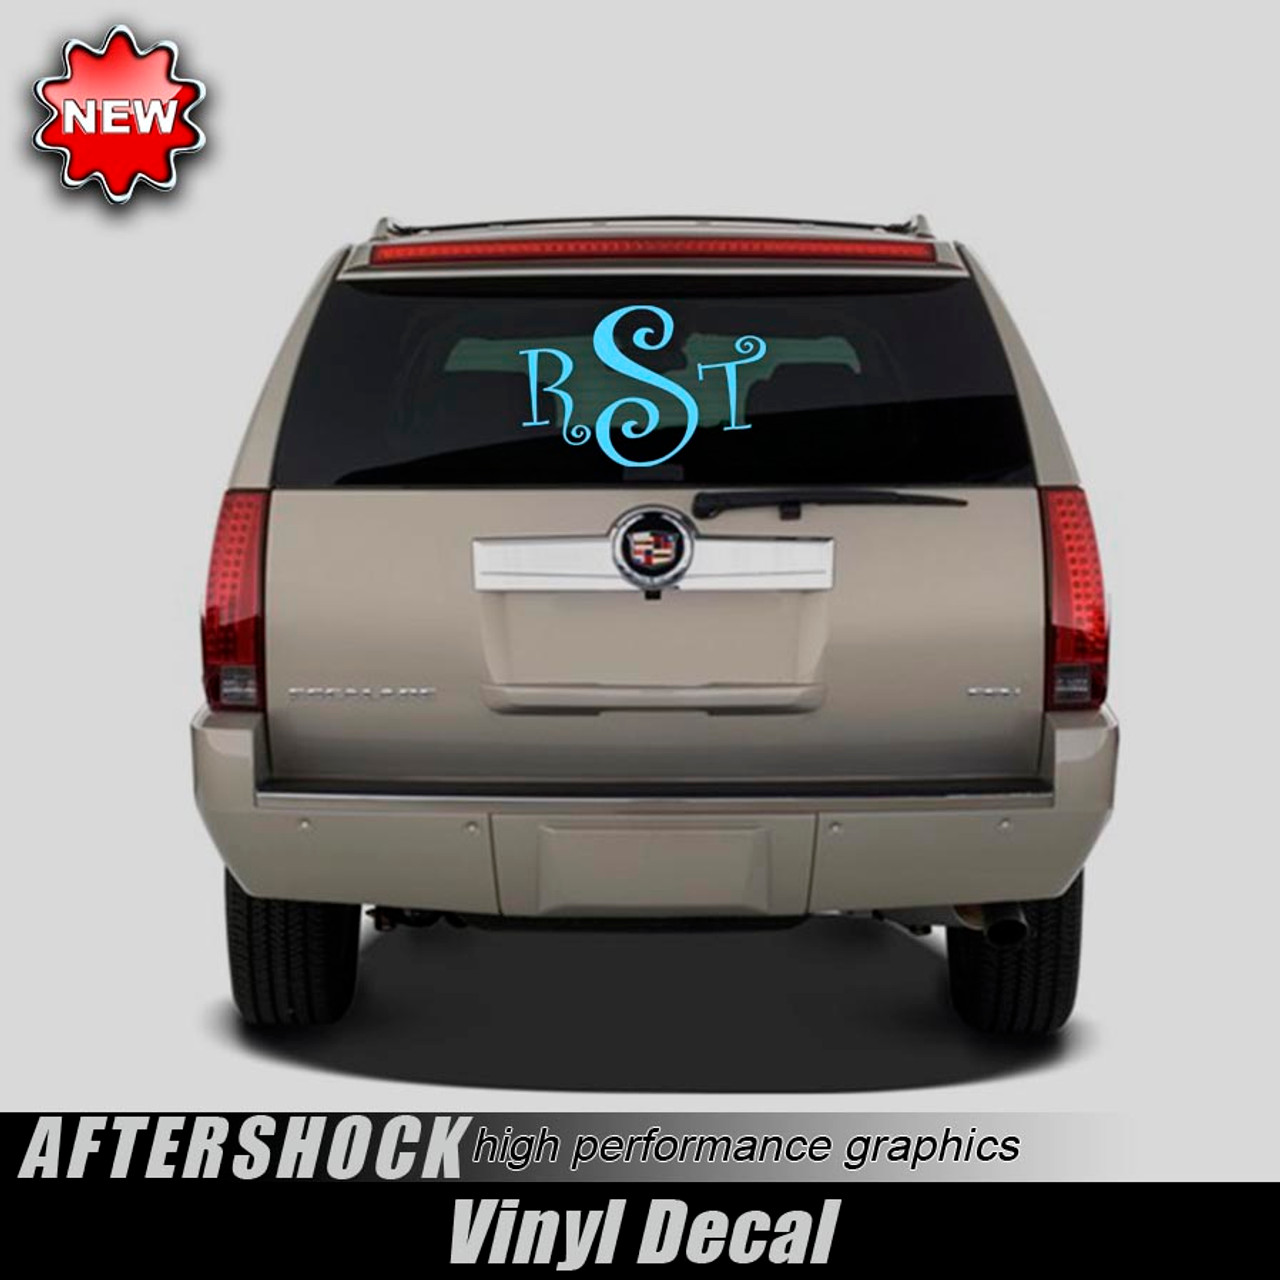 Monogrammed rear window decal